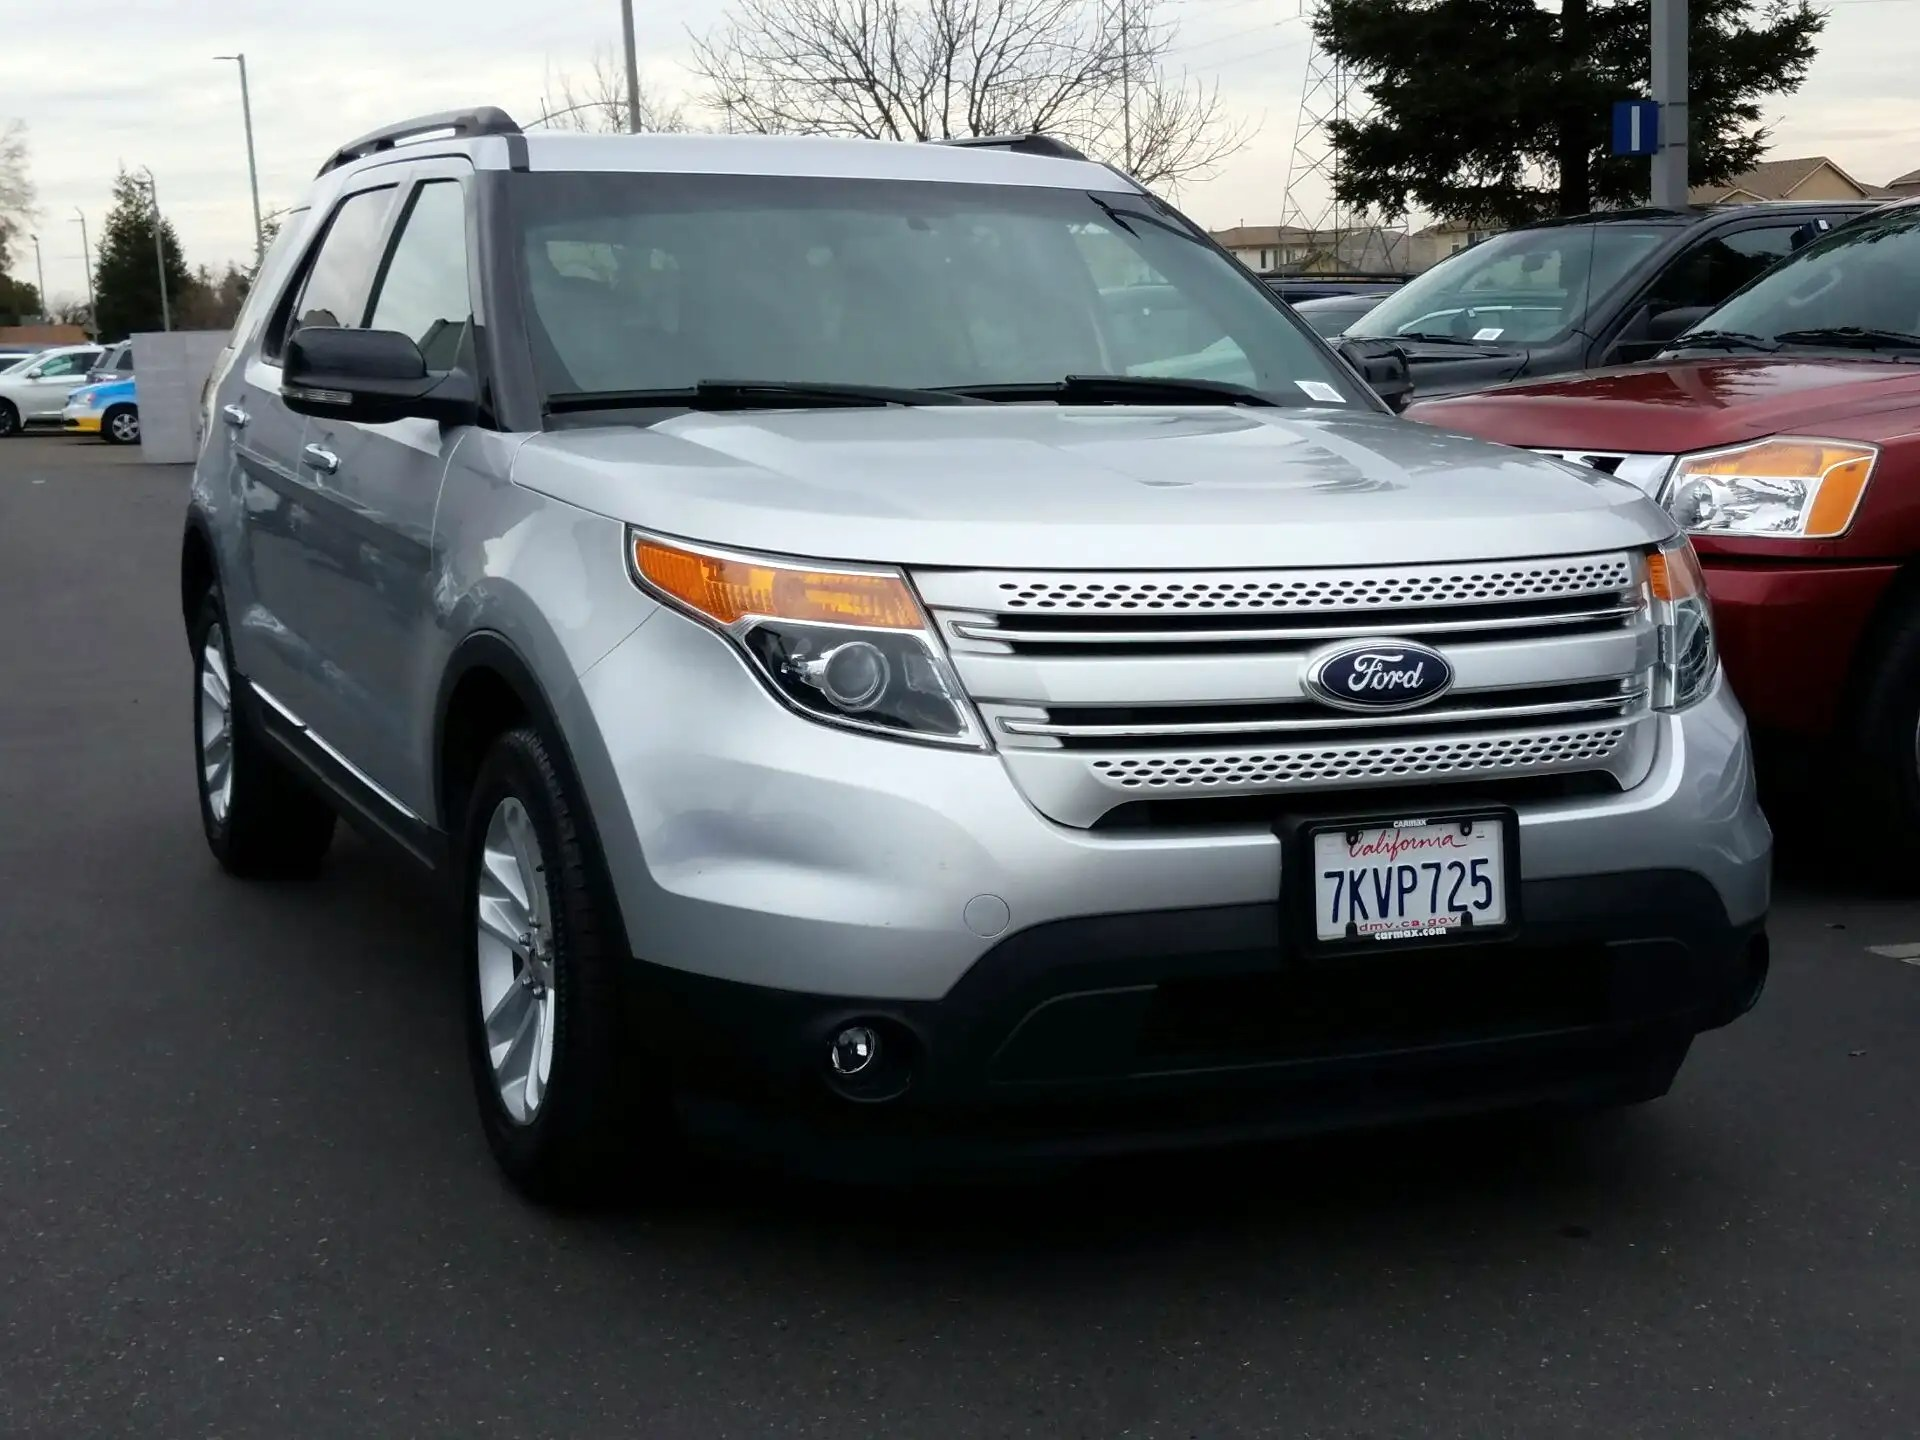 2013 ford explorer captains chairs does kmart have bean bag used cars with 3rd row seat for sale transmission automatic color silver interior white average vehicle review 4 338 reviews